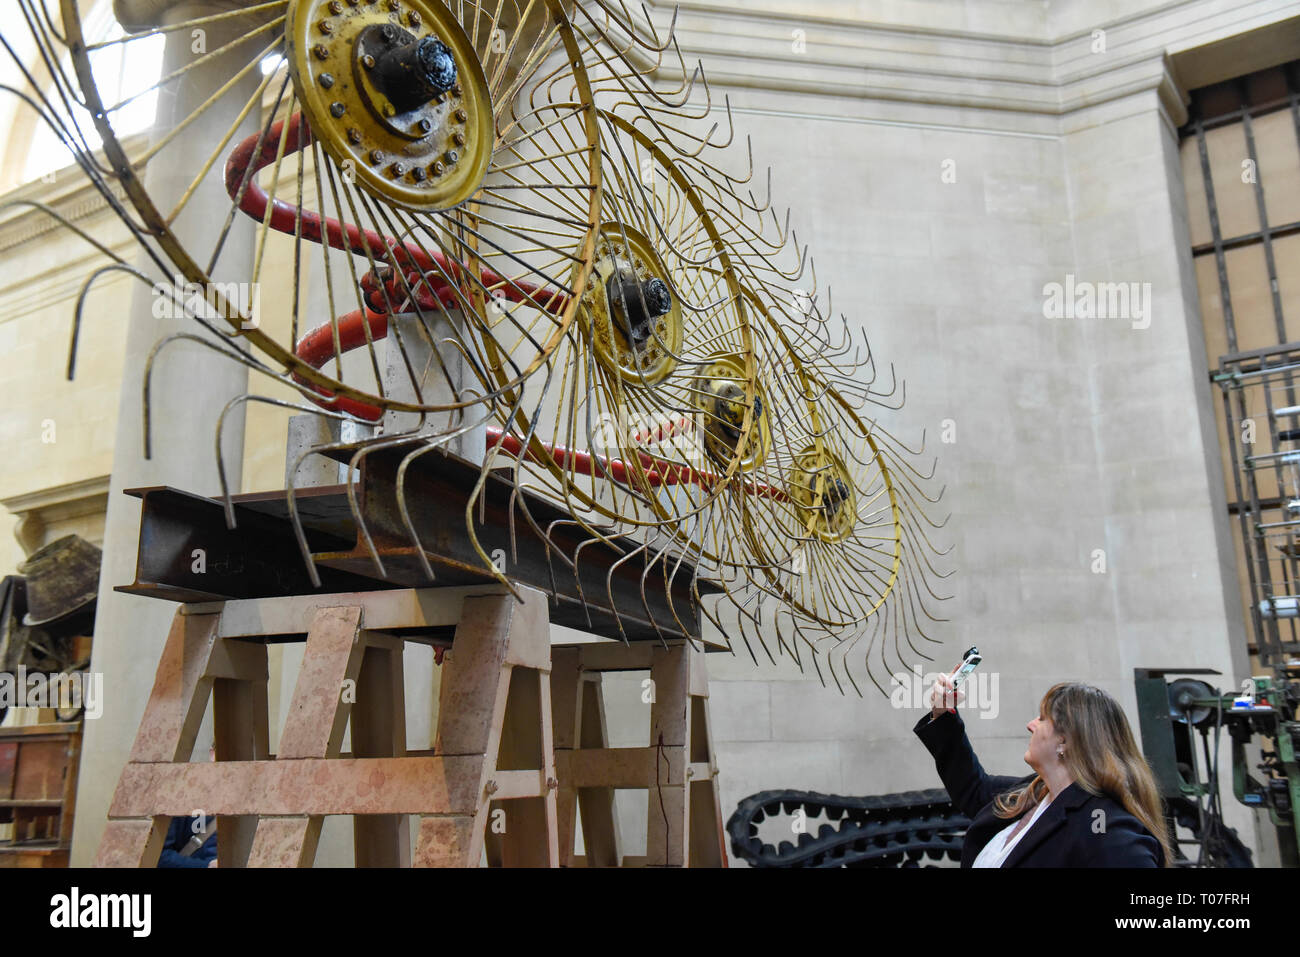 London, UK. 18th Mar, 2019. Preview of 'The Asset Strippers', a major new work by artist Mike Nelson, which has been created for the Tate Britain Commission, supported by Sotheby's, inviting artists to create new artworks for the Duveen Galleries. The artist has scoured online auctions of company liquidations and salvage yards for objects representing the decline of British industry and infrastructure. The exhibition runs 18 March to 6 October 2019 at Tate Britain. Credit: Stephen Chung/Alamy Live News - Stock Image